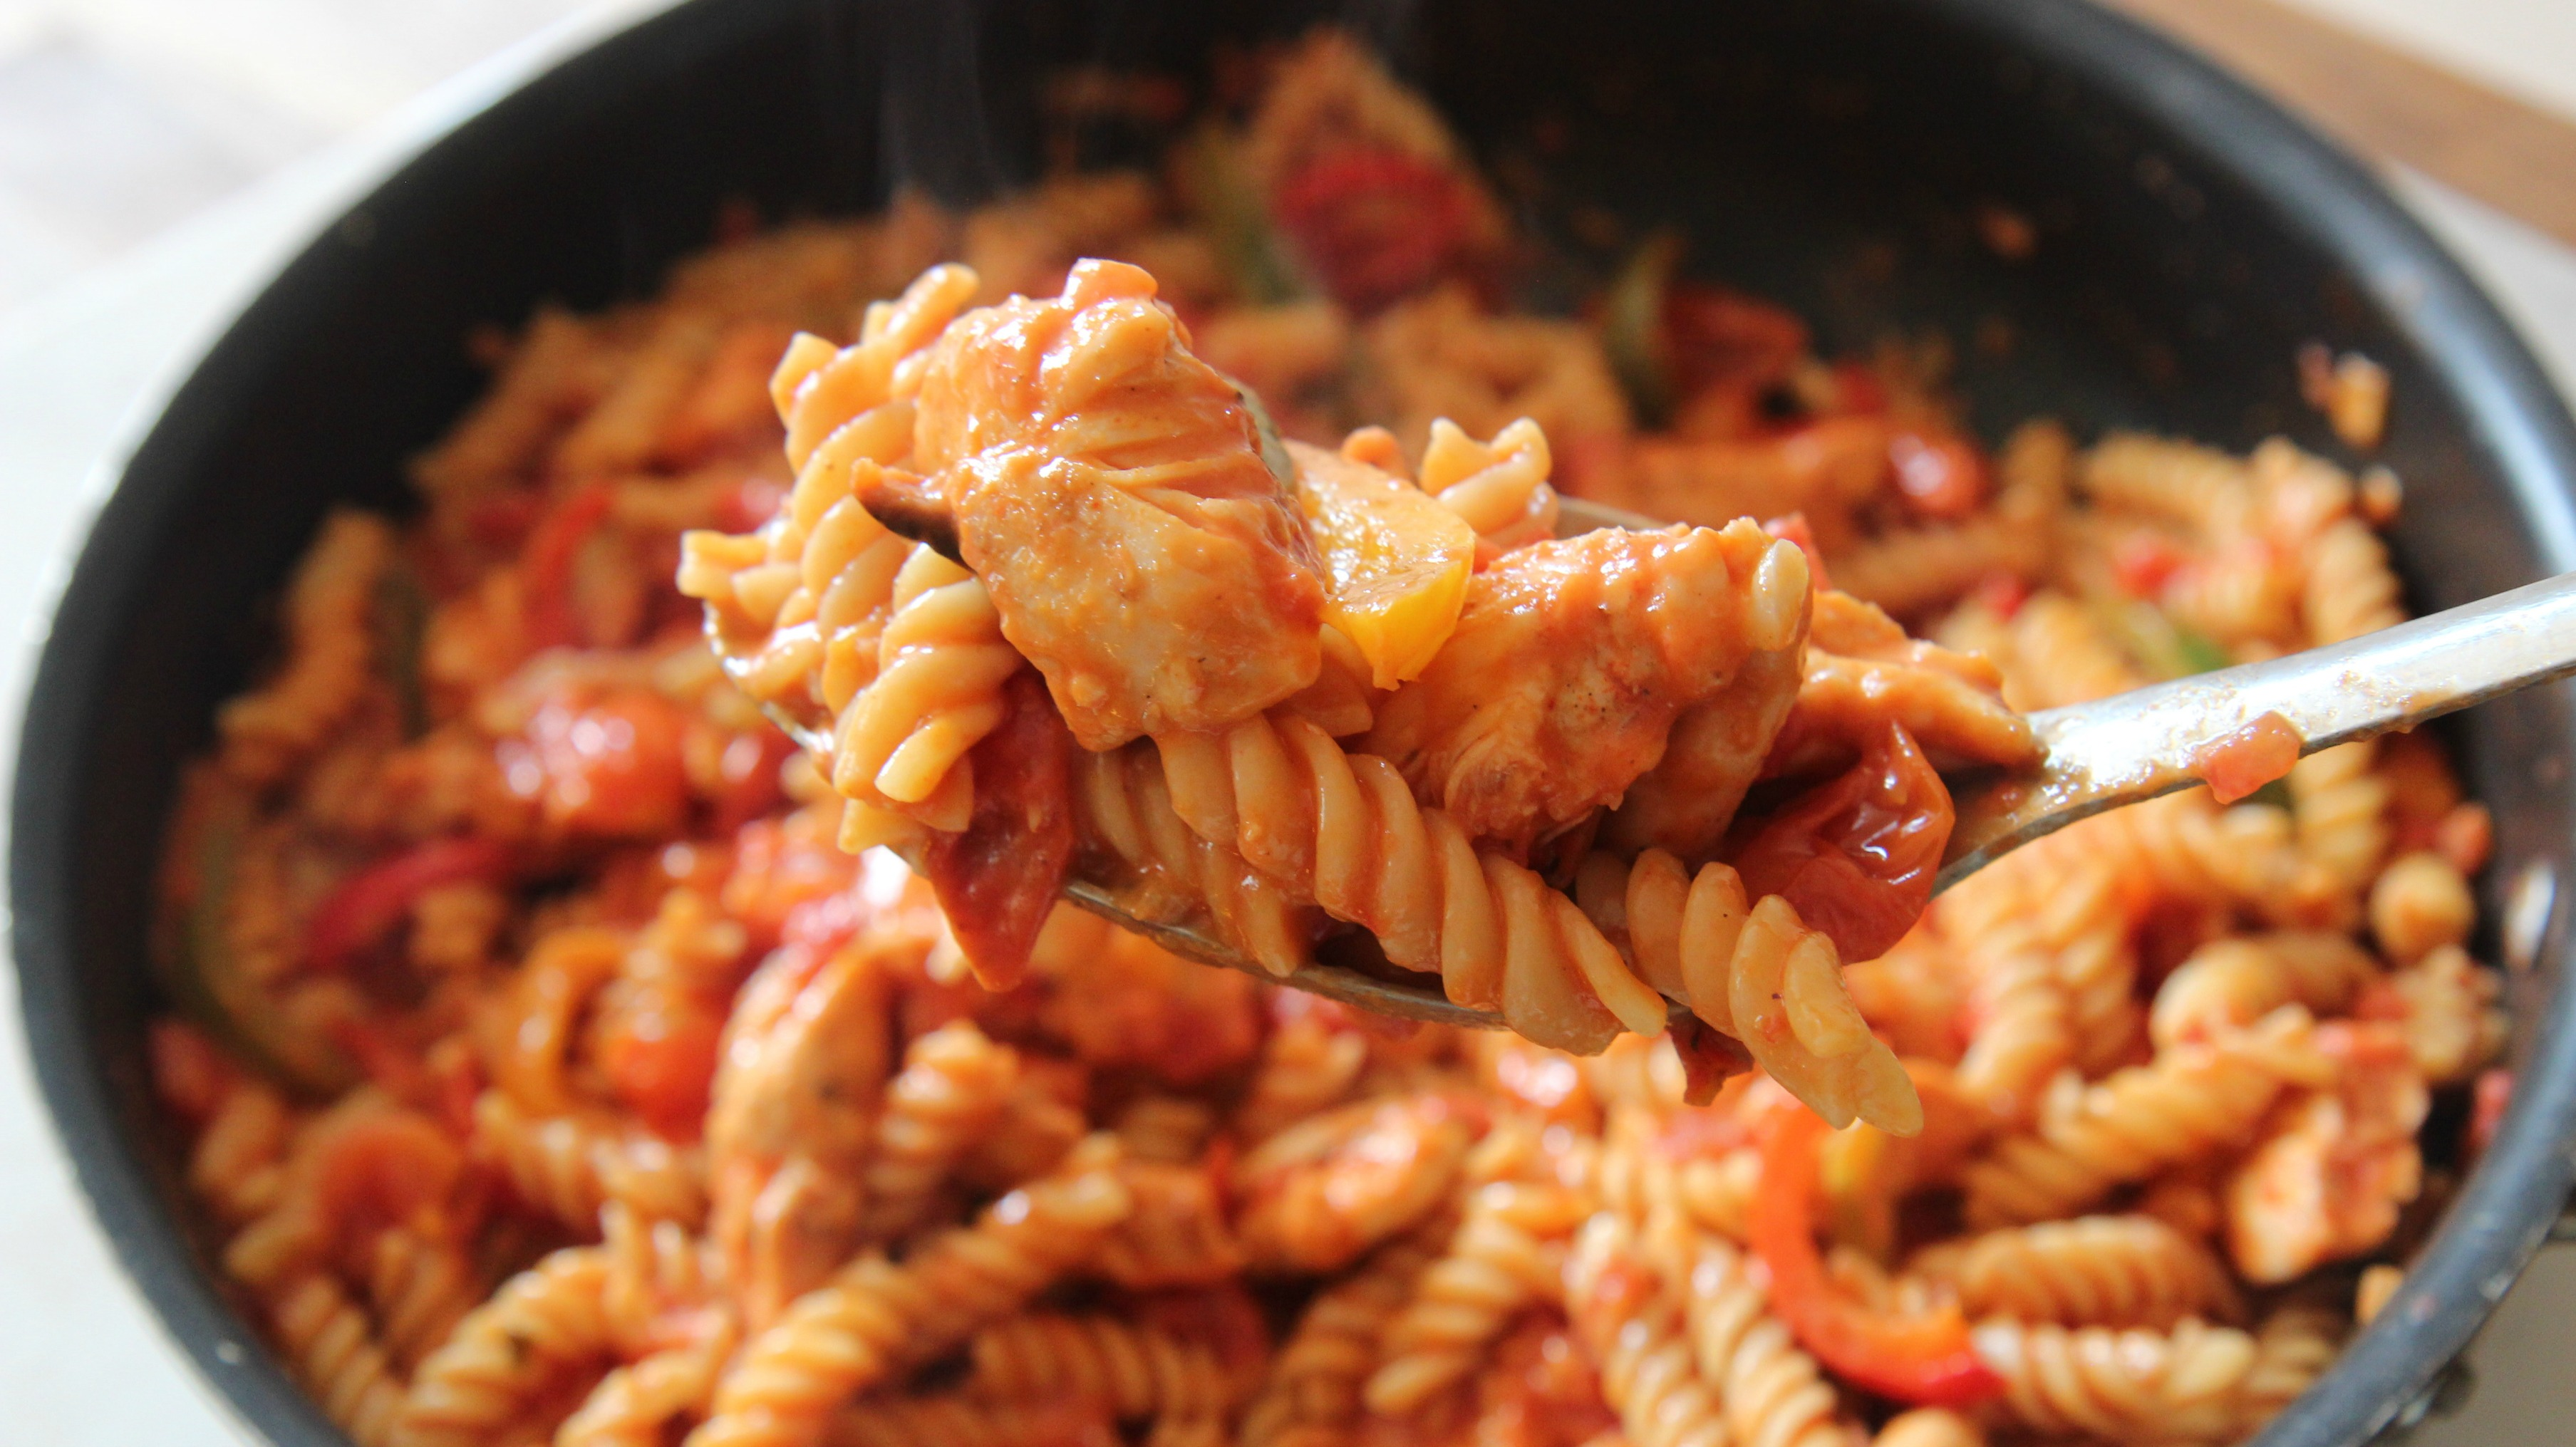 Packed with Tex-Mex flavor, this chicken fajita pasta recipe is sure to pack a punch.